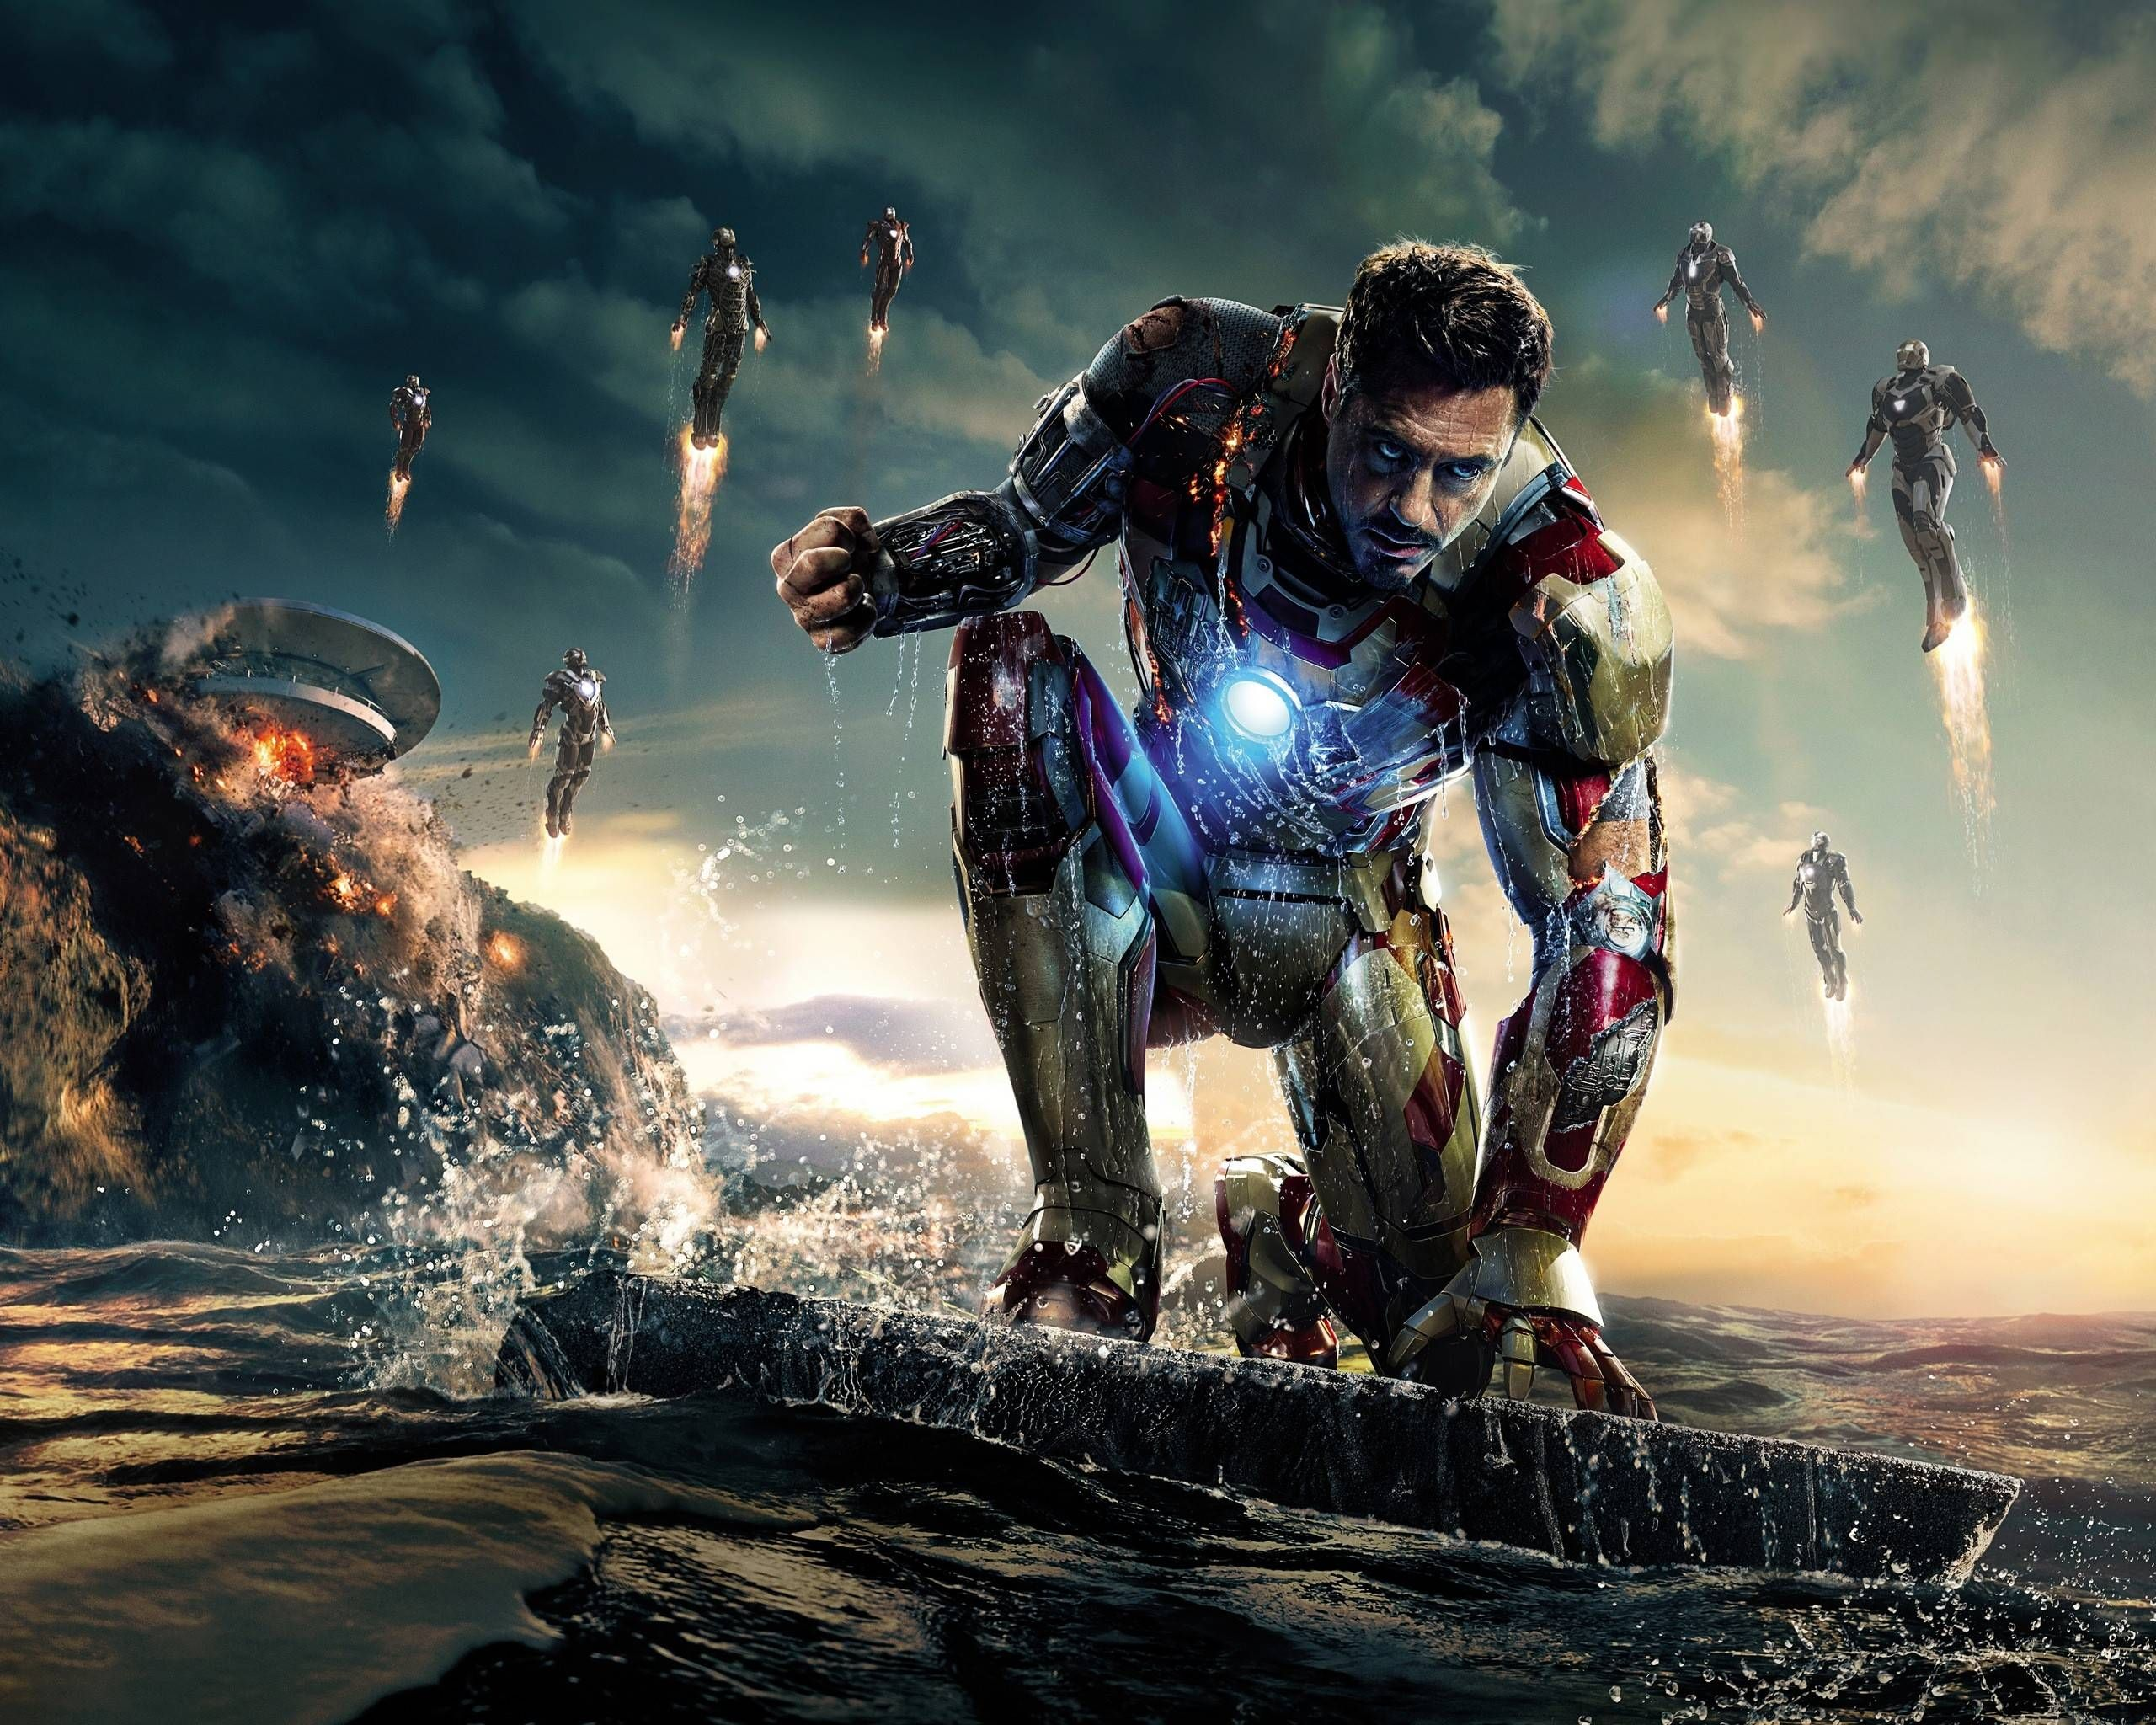 hd wallpapers iron man 3 - wallpaper cave | epic car wallpapers in